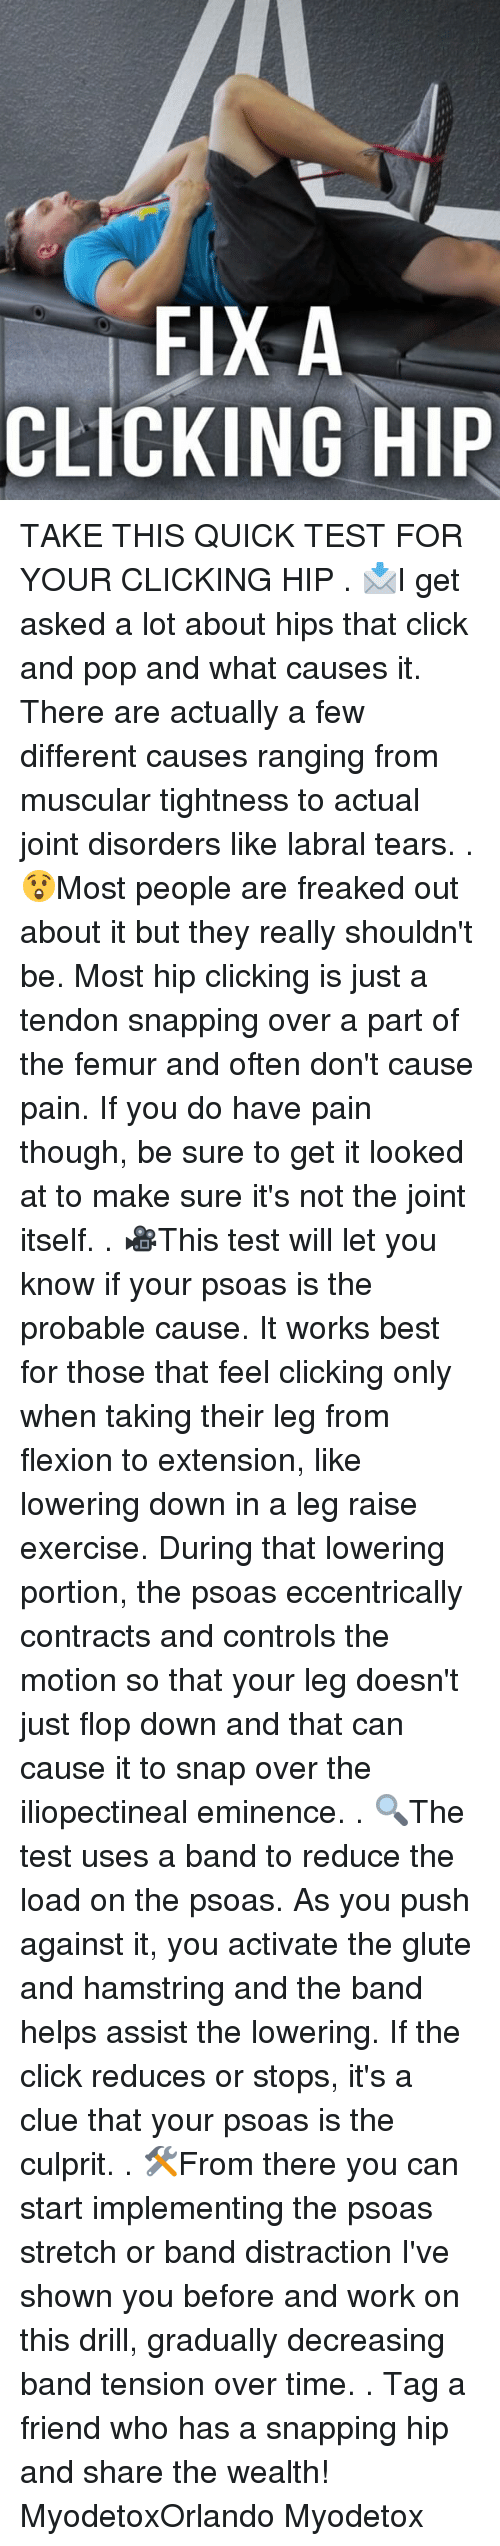 probable: FIX A  CLICKING HIP TAKE THIS QUICK TEST FOR YOUR CLICKING HIP . 📩I get asked a lot about hips that click and pop and what causes it. There are actually a few different causes ranging from muscular tightness to actual joint disorders like labral tears. . 😲Most people are freaked out about it but they really shouldn't be. Most hip clicking is just a tendon snapping over a part of the femur and often don't cause pain. If you do have pain though, be sure to get it looked at to make sure it's not the joint itself. . 🎥This test will let you know if your psoas is the probable cause. It works best for those that feel clicking only when taking their leg from flexion to extension, like lowering down in a leg raise exercise. During that lowering portion, the psoas eccentrically contracts and controls the motion so that your leg doesn't just flop down and that can cause it to snap over the iliopectineal eminence. . 🔍The test uses a band to reduce the load on the psoas. As you push against it, you activate the glute and hamstring and the band helps assist the lowering. If the click reduces or stops, it's a clue that your psoas is the culprit. . 🛠From there you can start implementing the psoas stretch or band distraction I've shown you before and work on this drill, gradually decreasing band tension over time. . Tag a friend who has a snapping hip and share the wealth! MyodetoxOrlando Myodetox